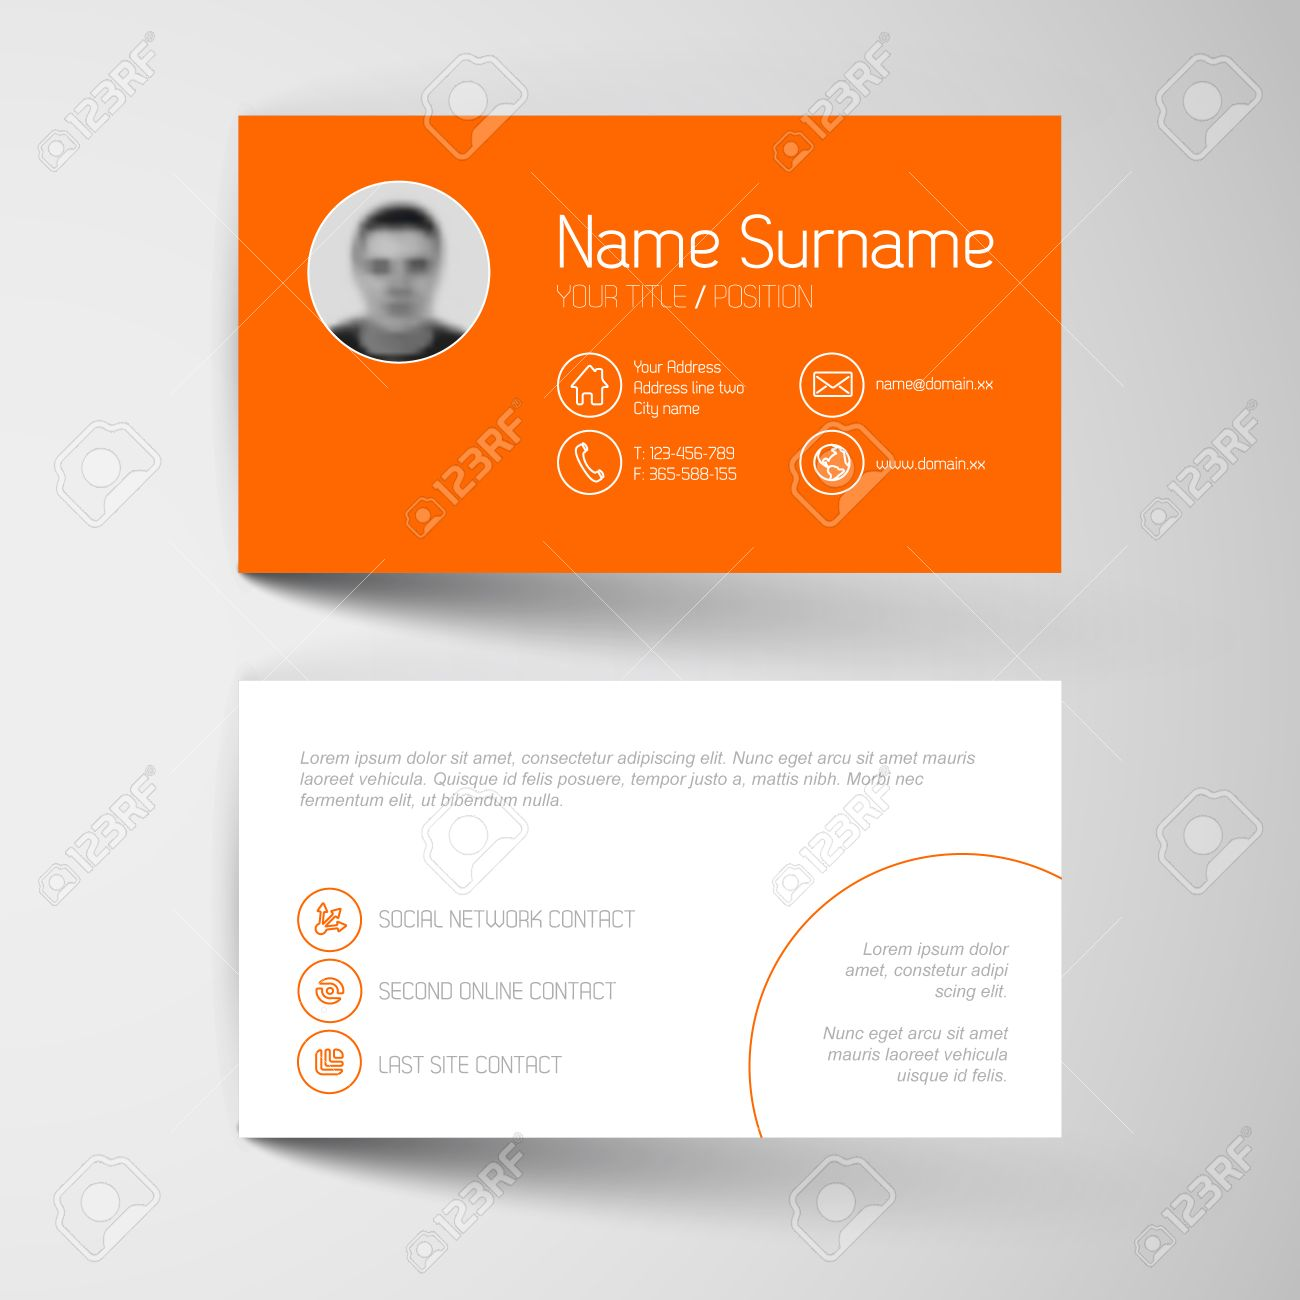 Modern Simple Orange Business Card Template With Flat User ...